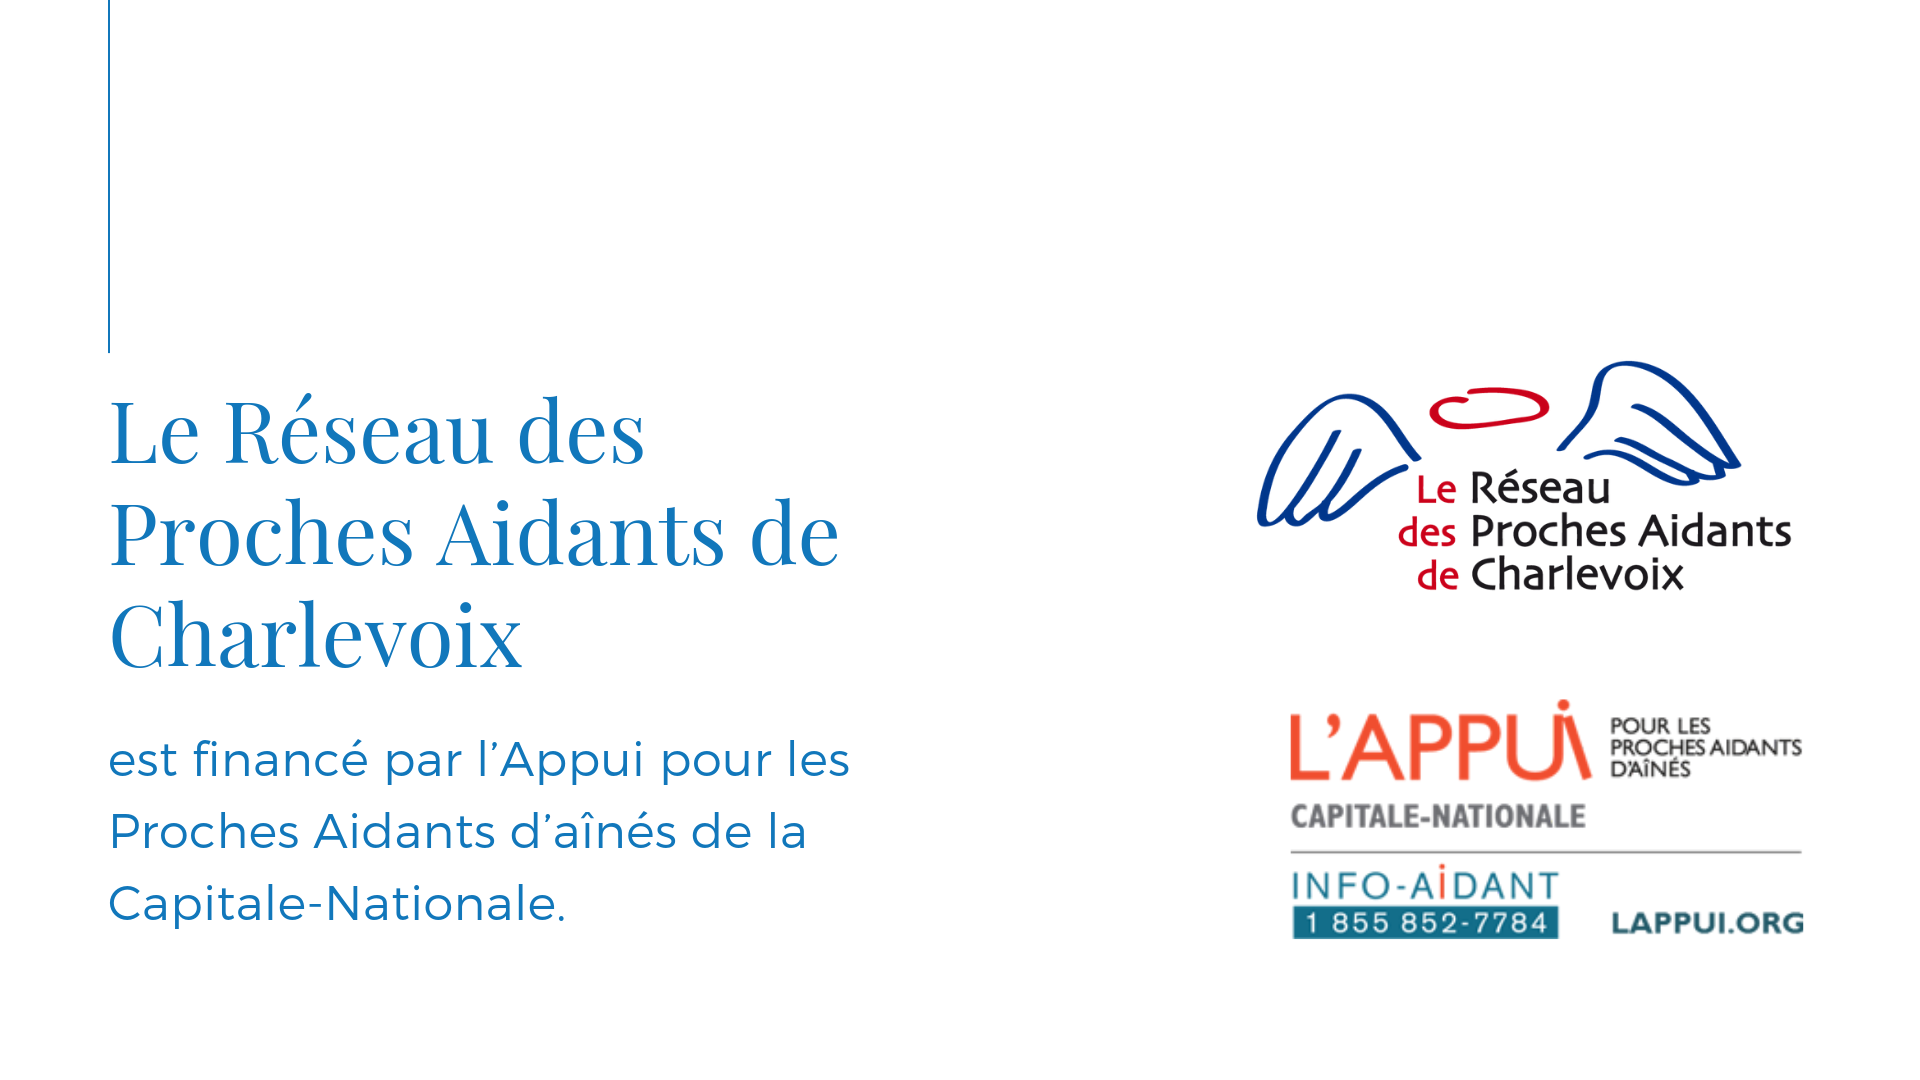 37 proches aidants appui capitale nationale